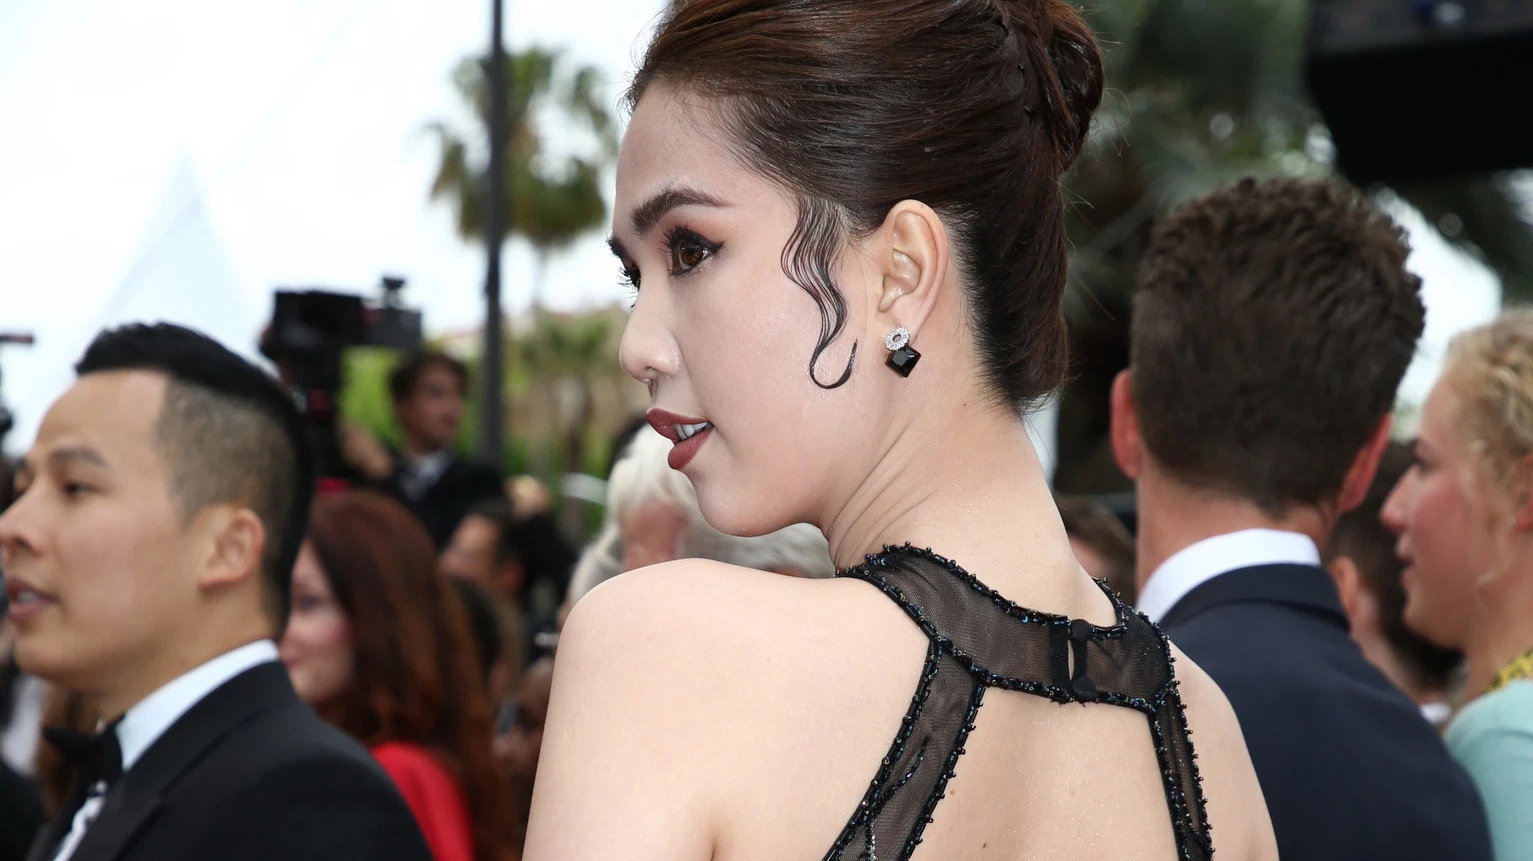 Vietnamese model bashed for wearing revealing gown in Cannes